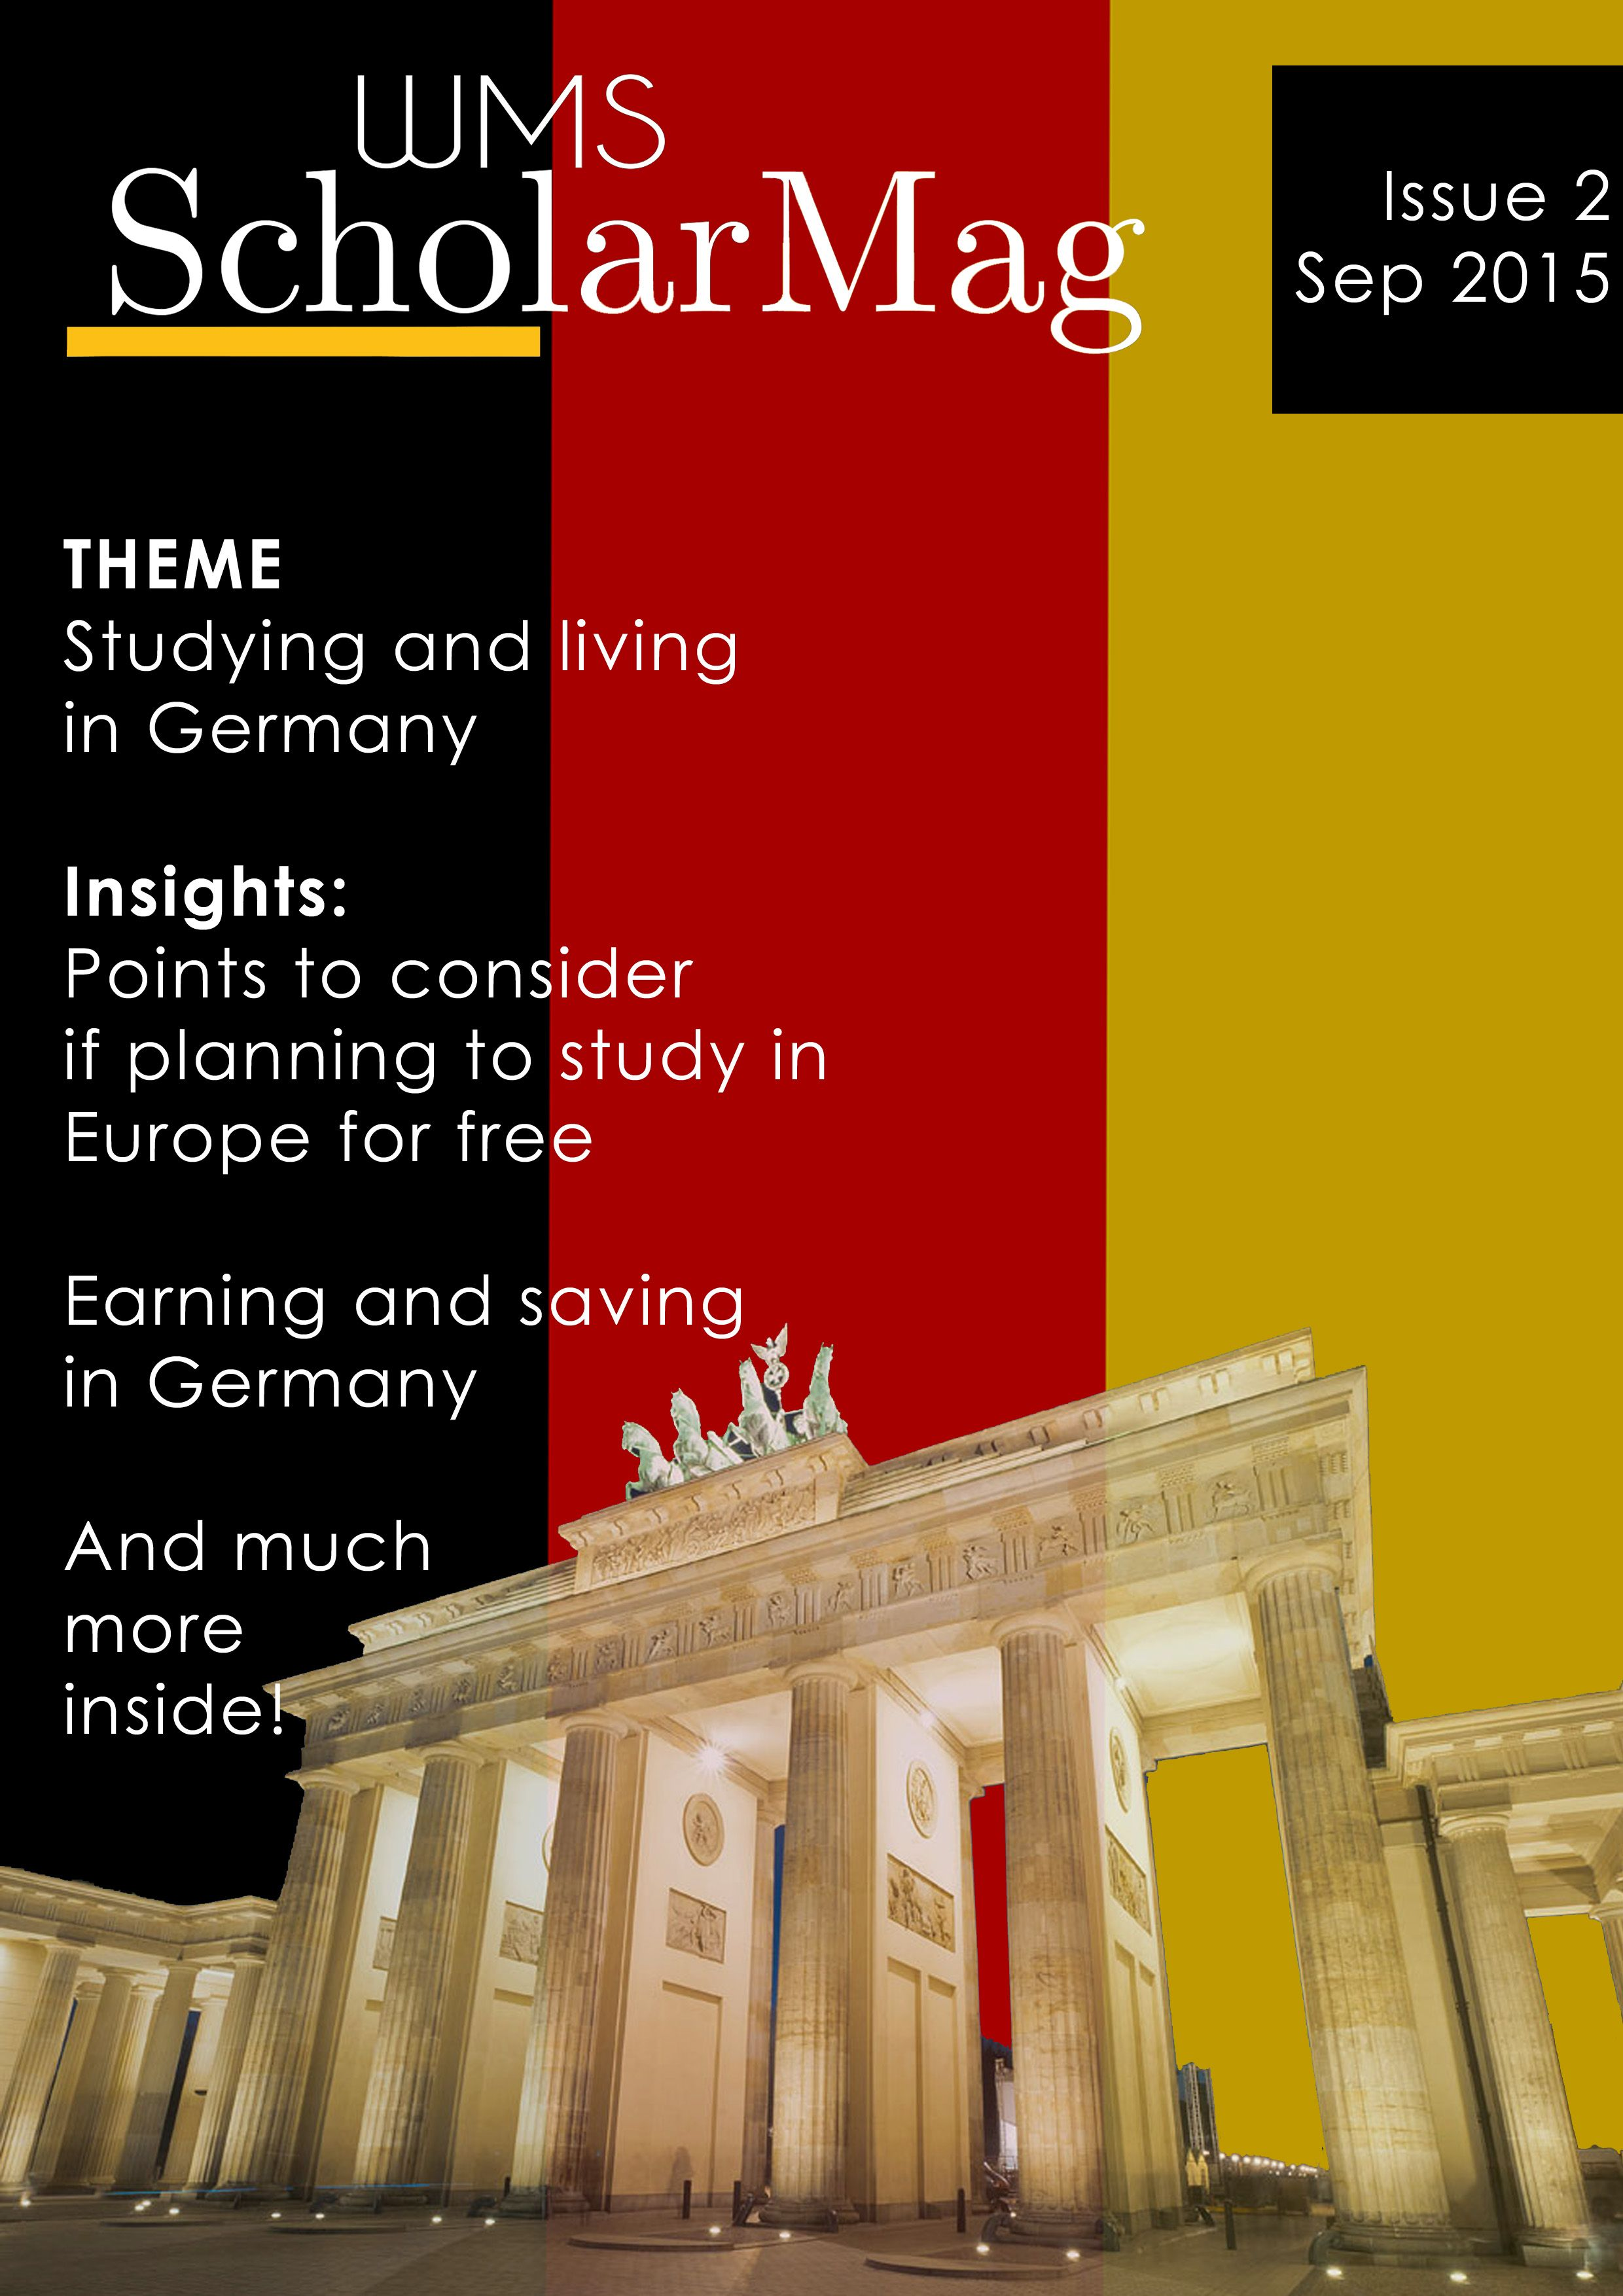 How to get free education and scholarships in germany